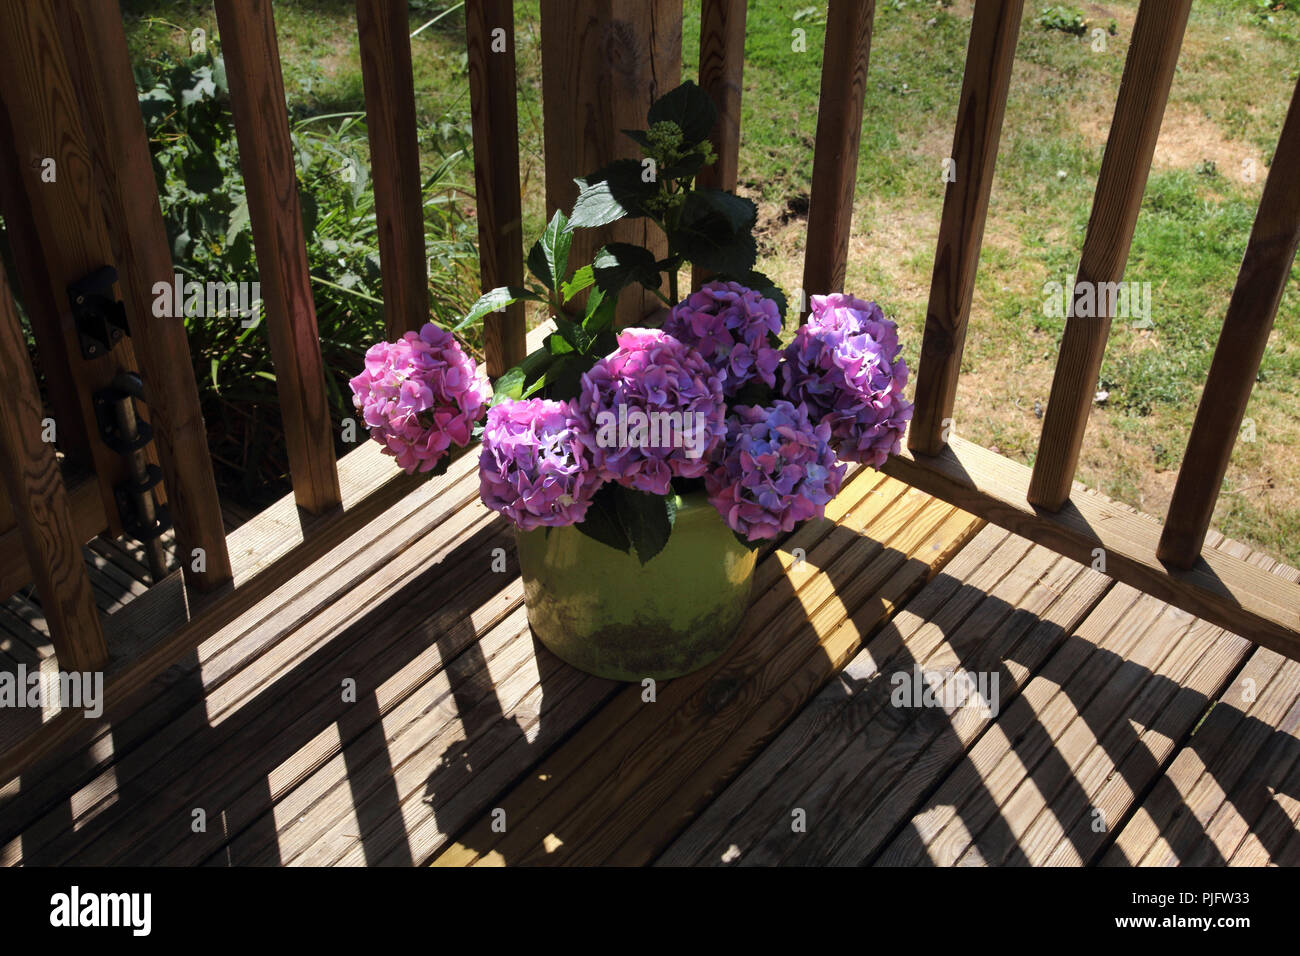 Hydrangeas On Decking in Garden Gillingham Dorset England - Stock Image